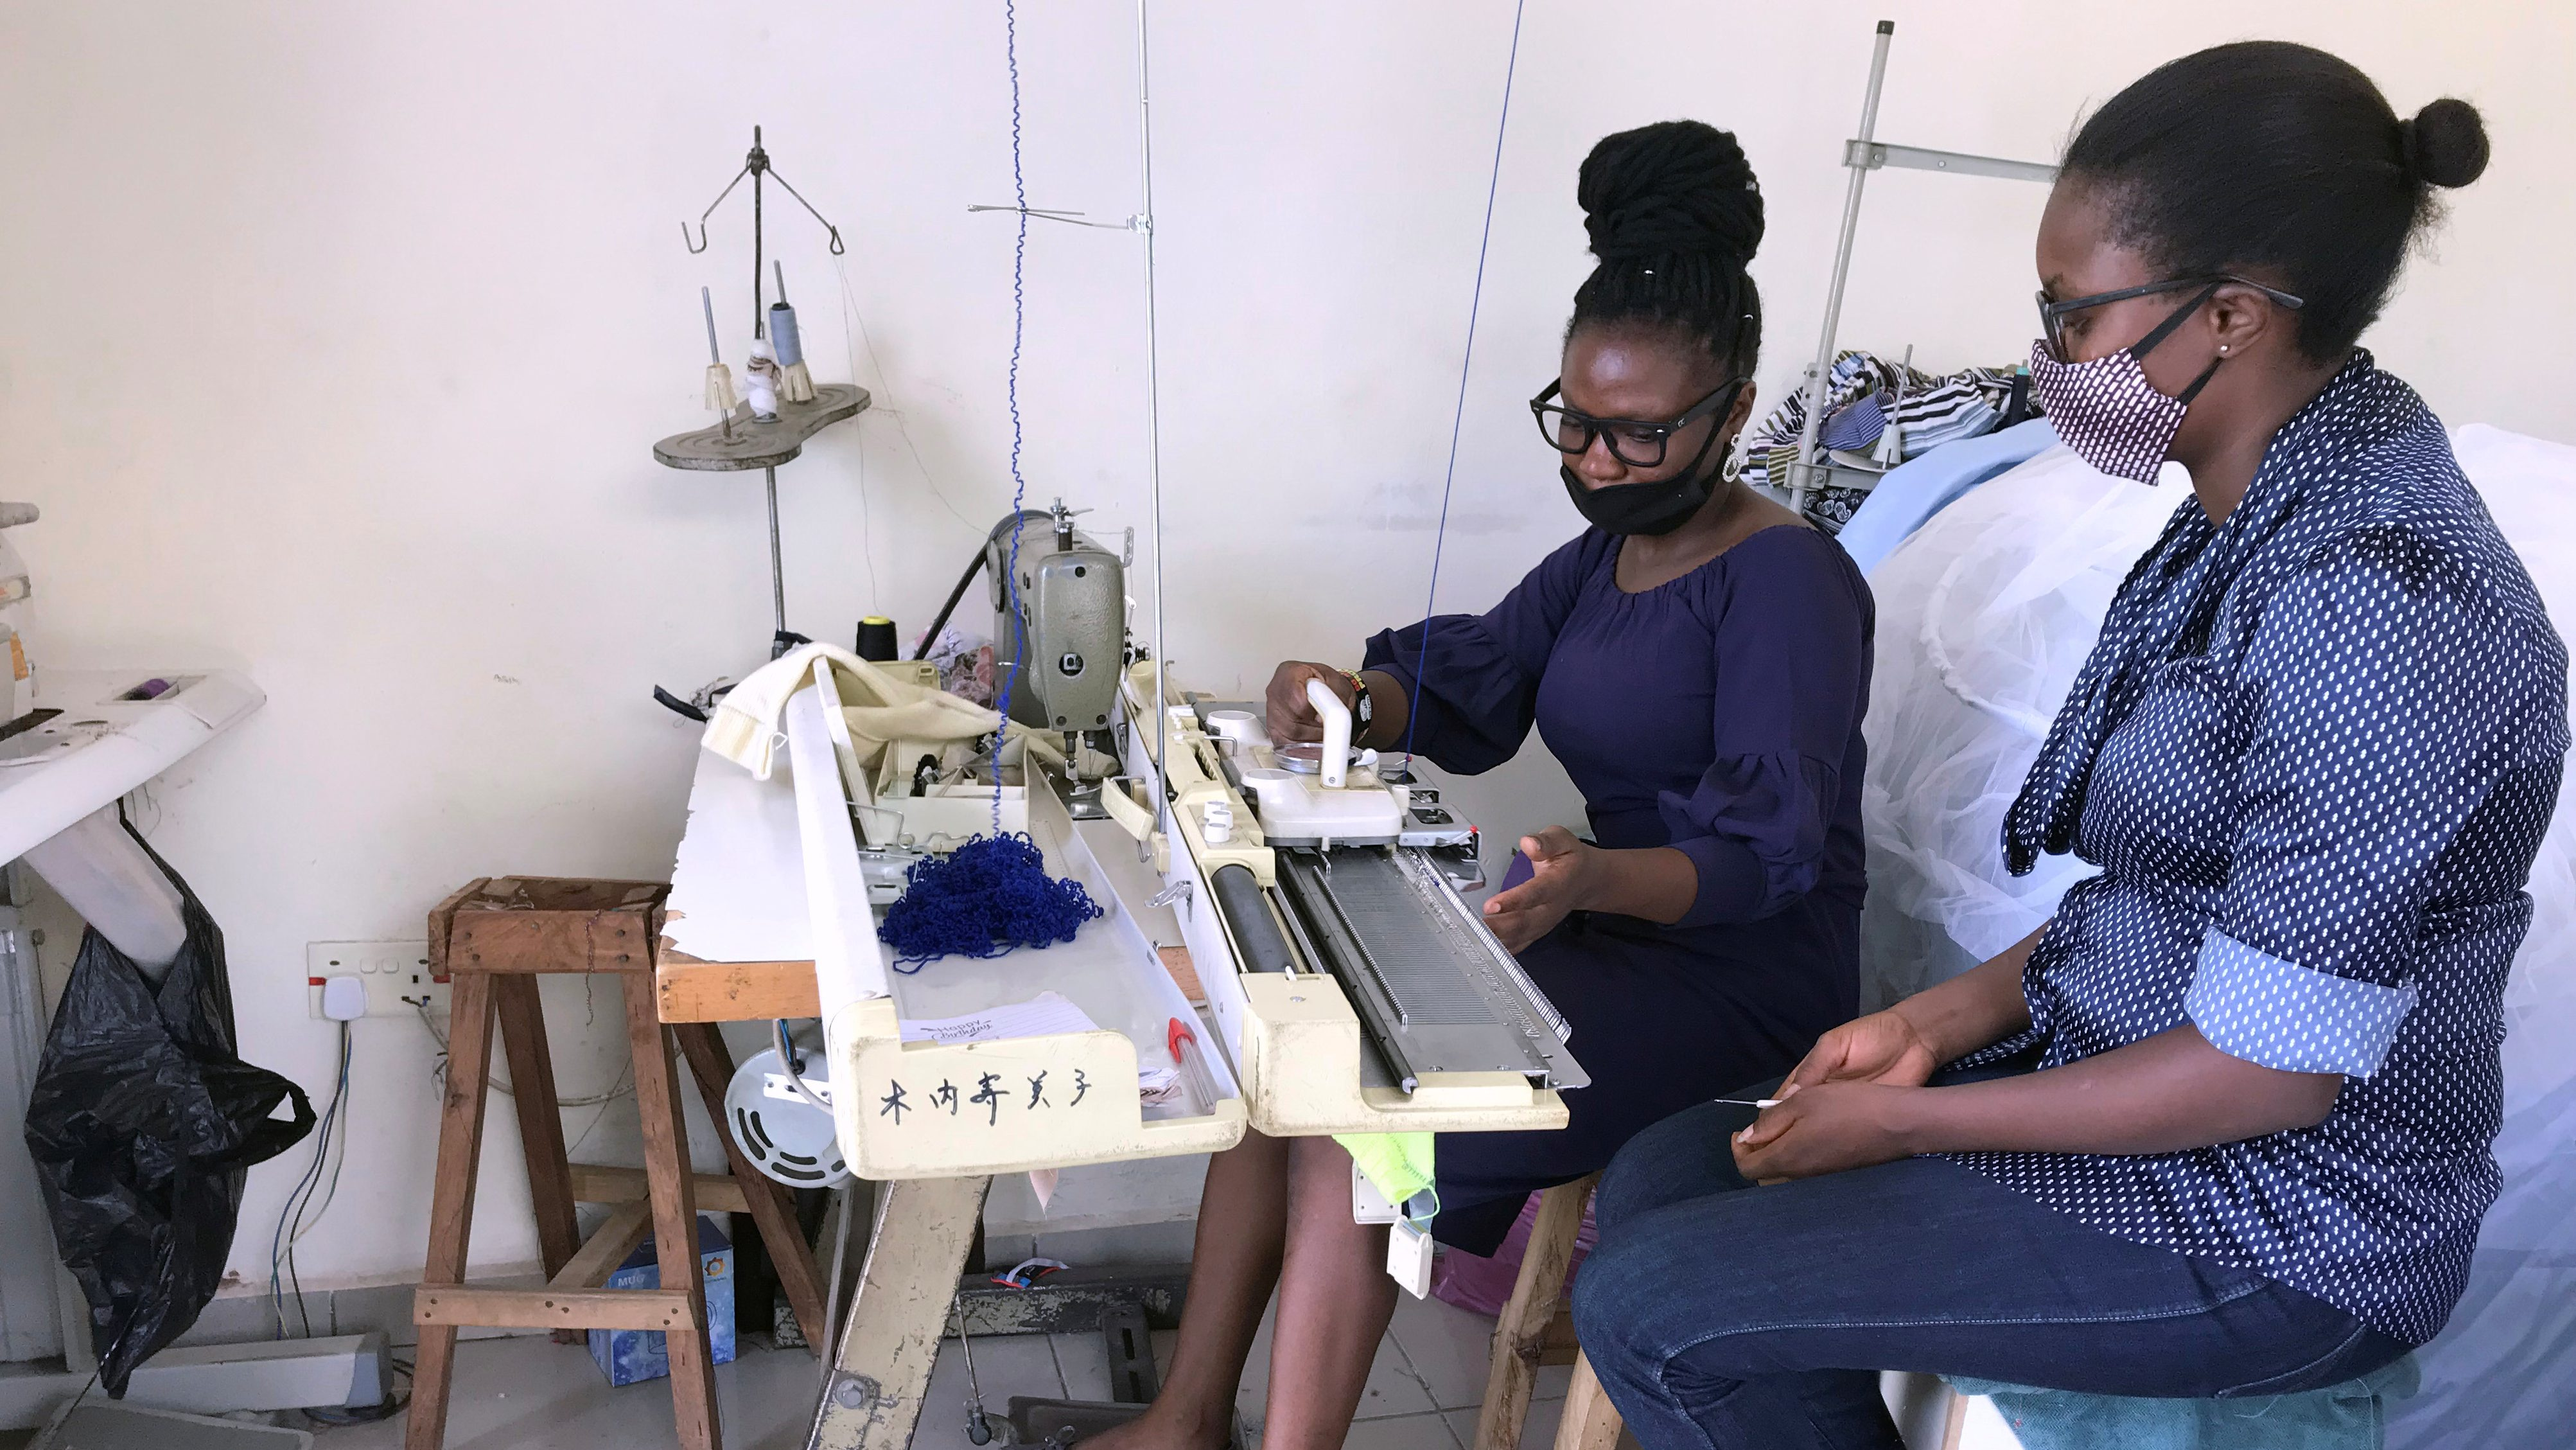 A woman learns how to use a sewing machine from another woman who watches and observes